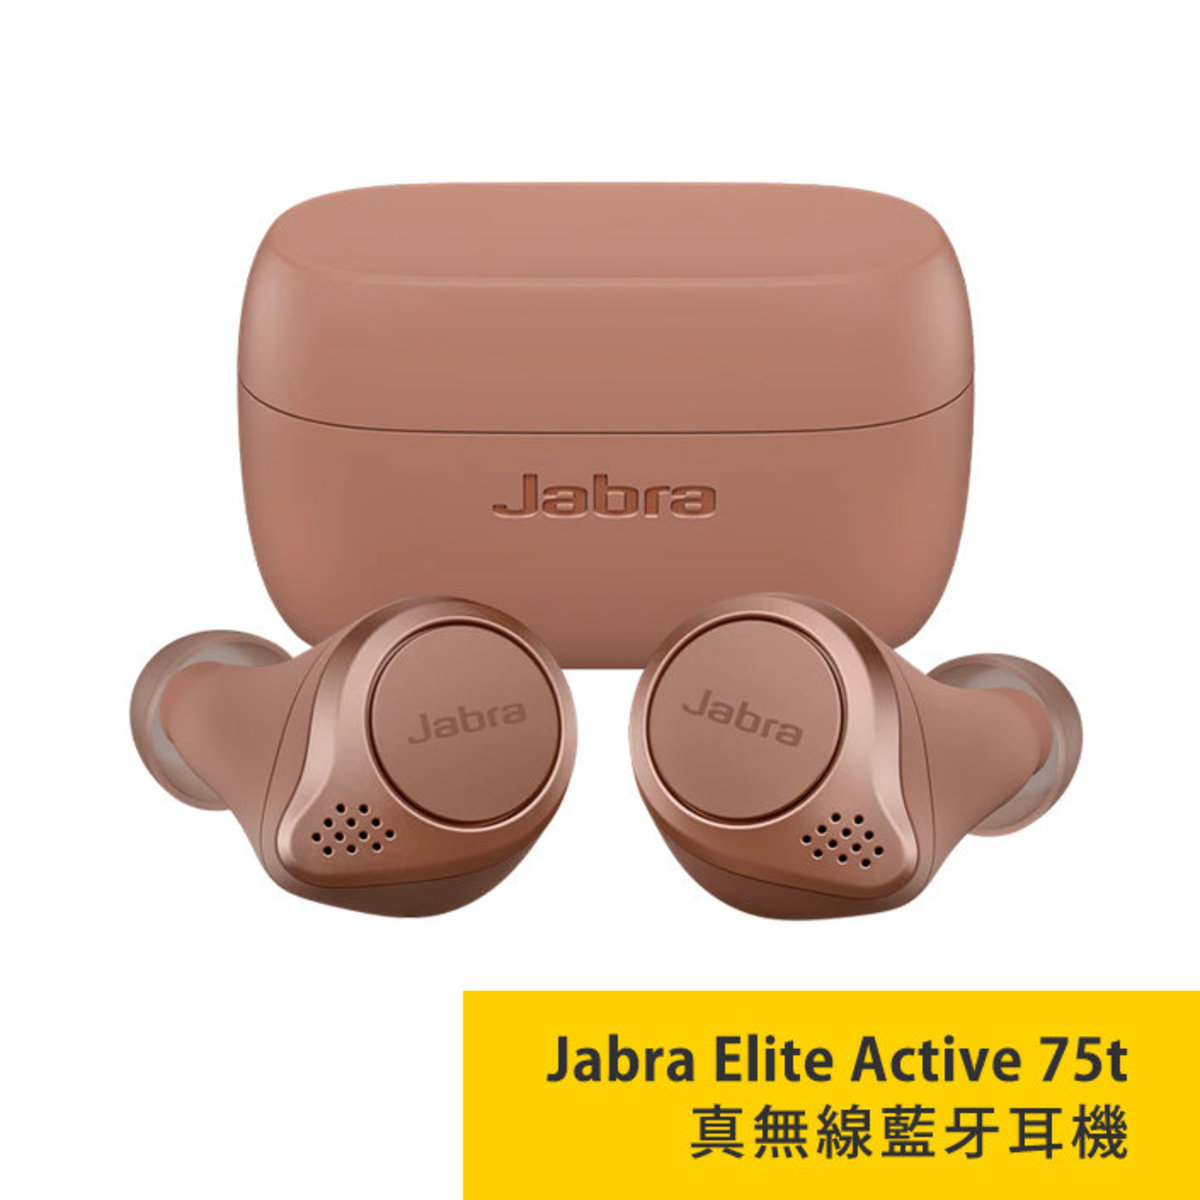 Jabra Elite Active 75t Compact Truly Wireless Earphone Sienna Parallel Import Goods Color Red Hktvmall Online Shopping